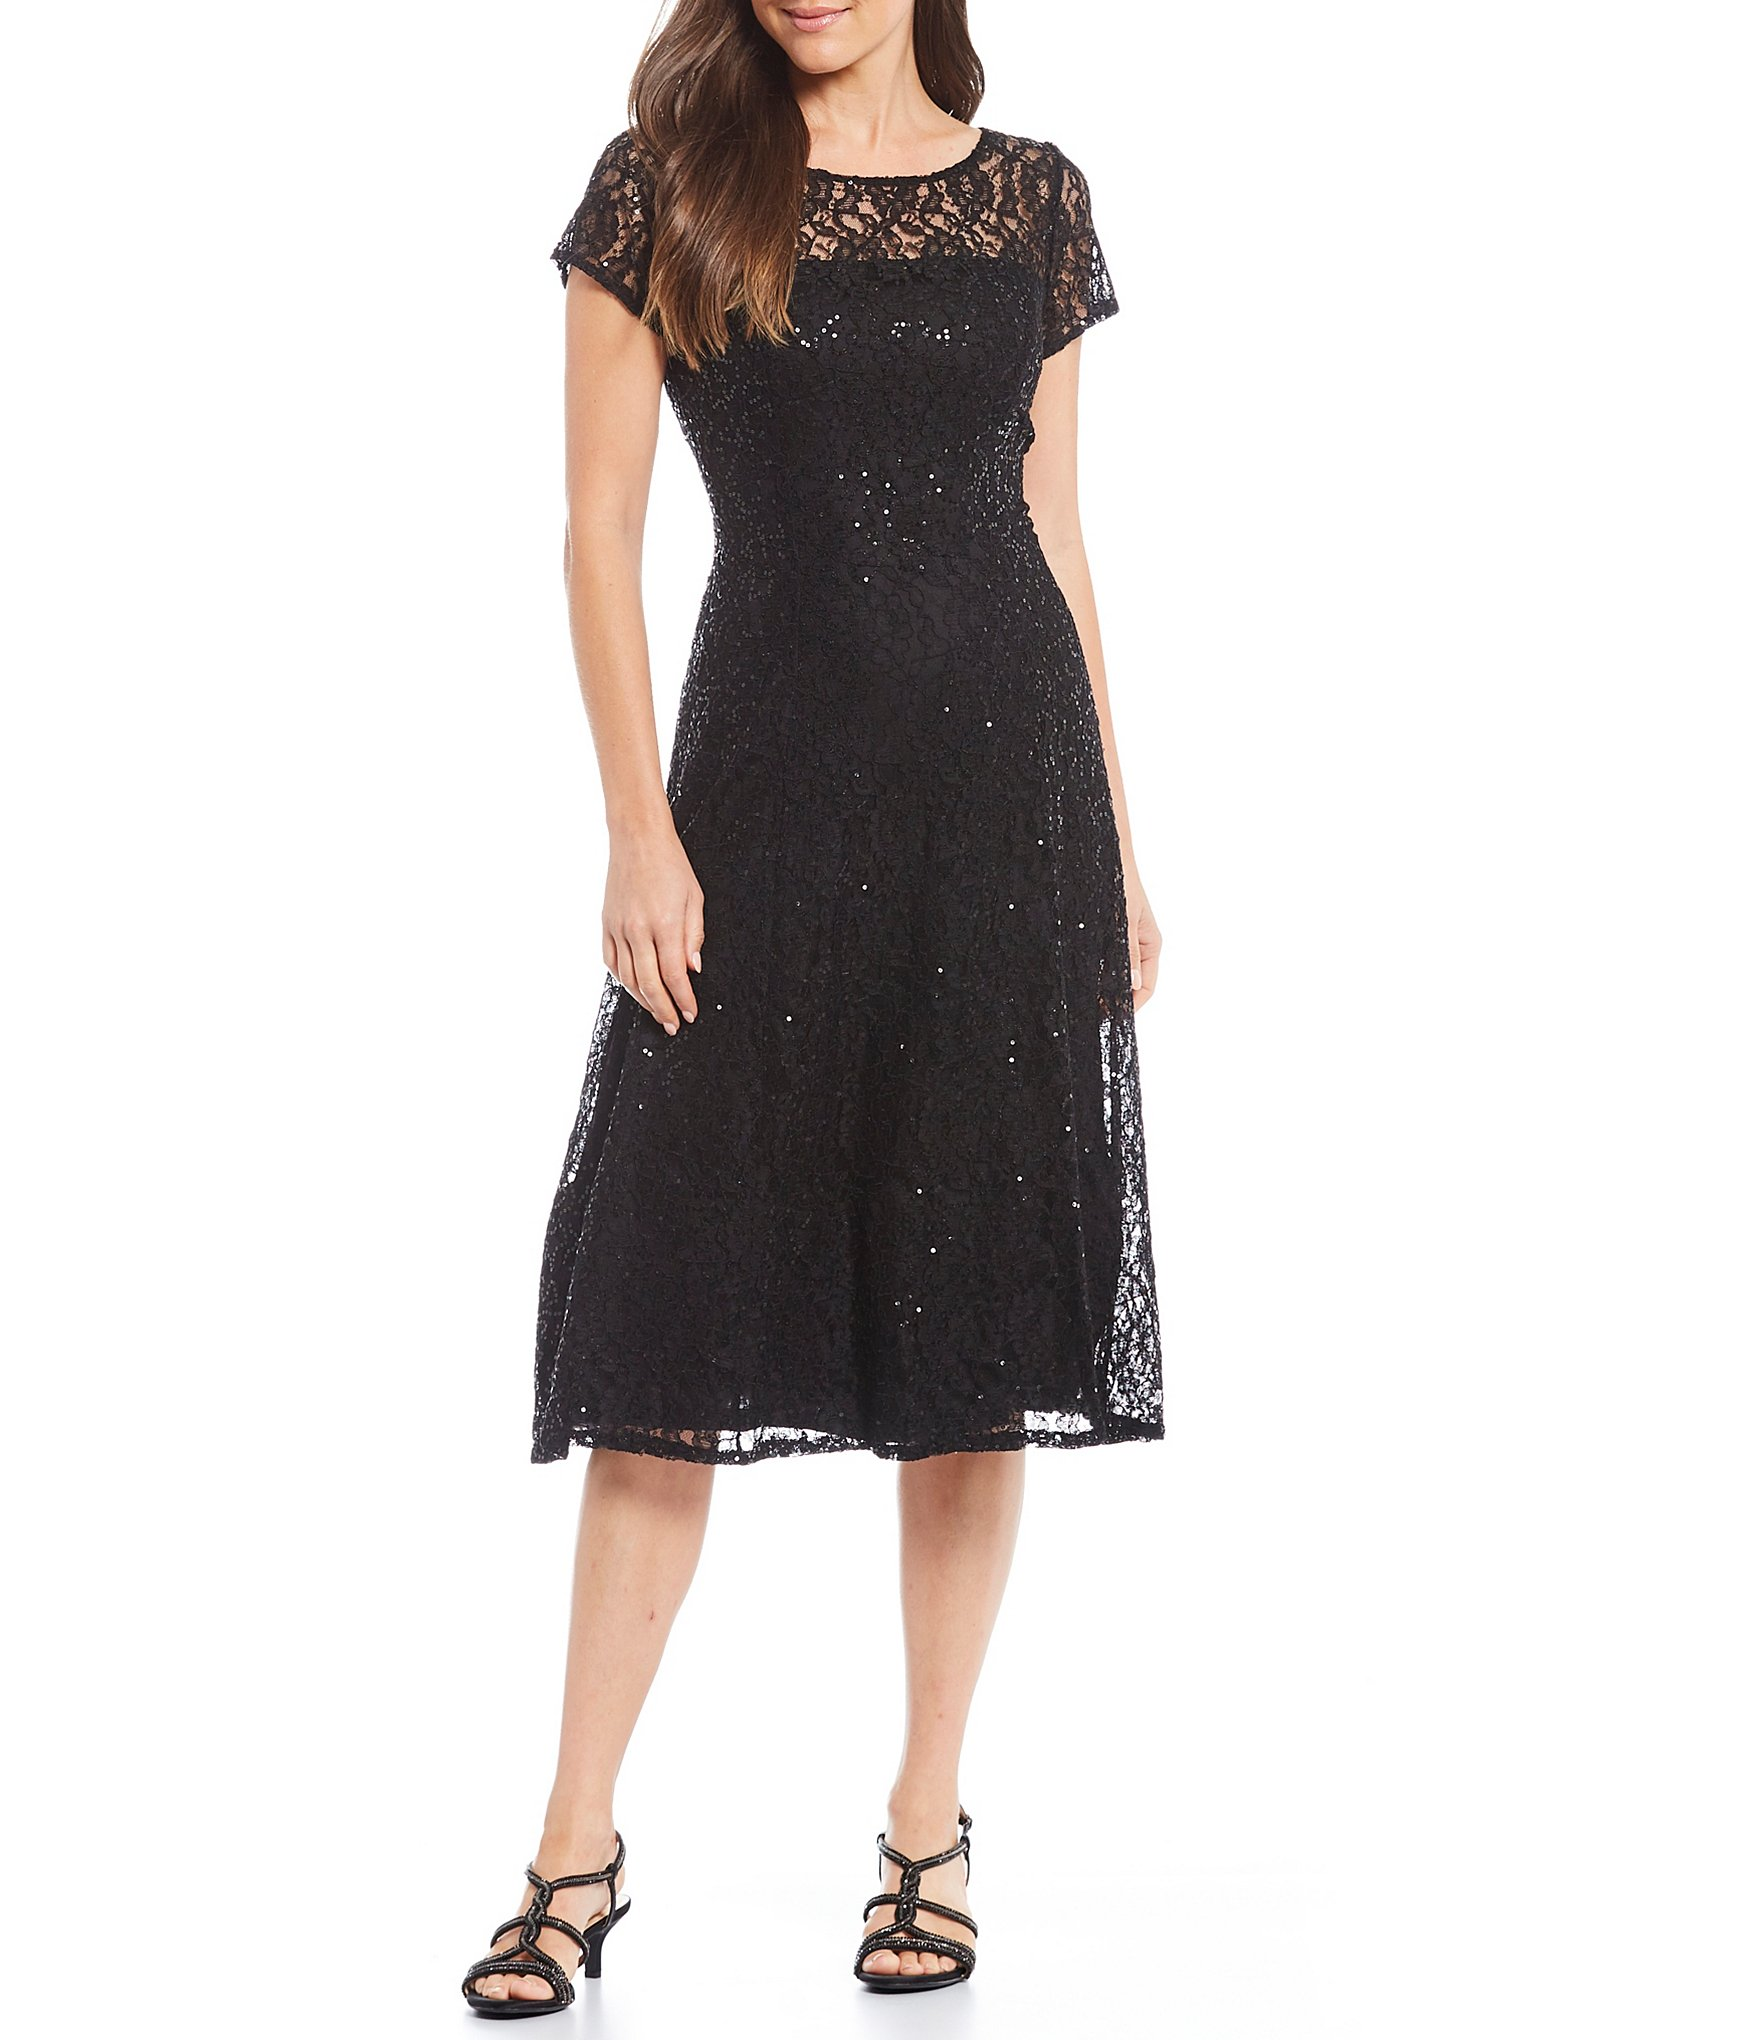 679dd878 Black Women's Cocktail & Party Dresses | Dillard's